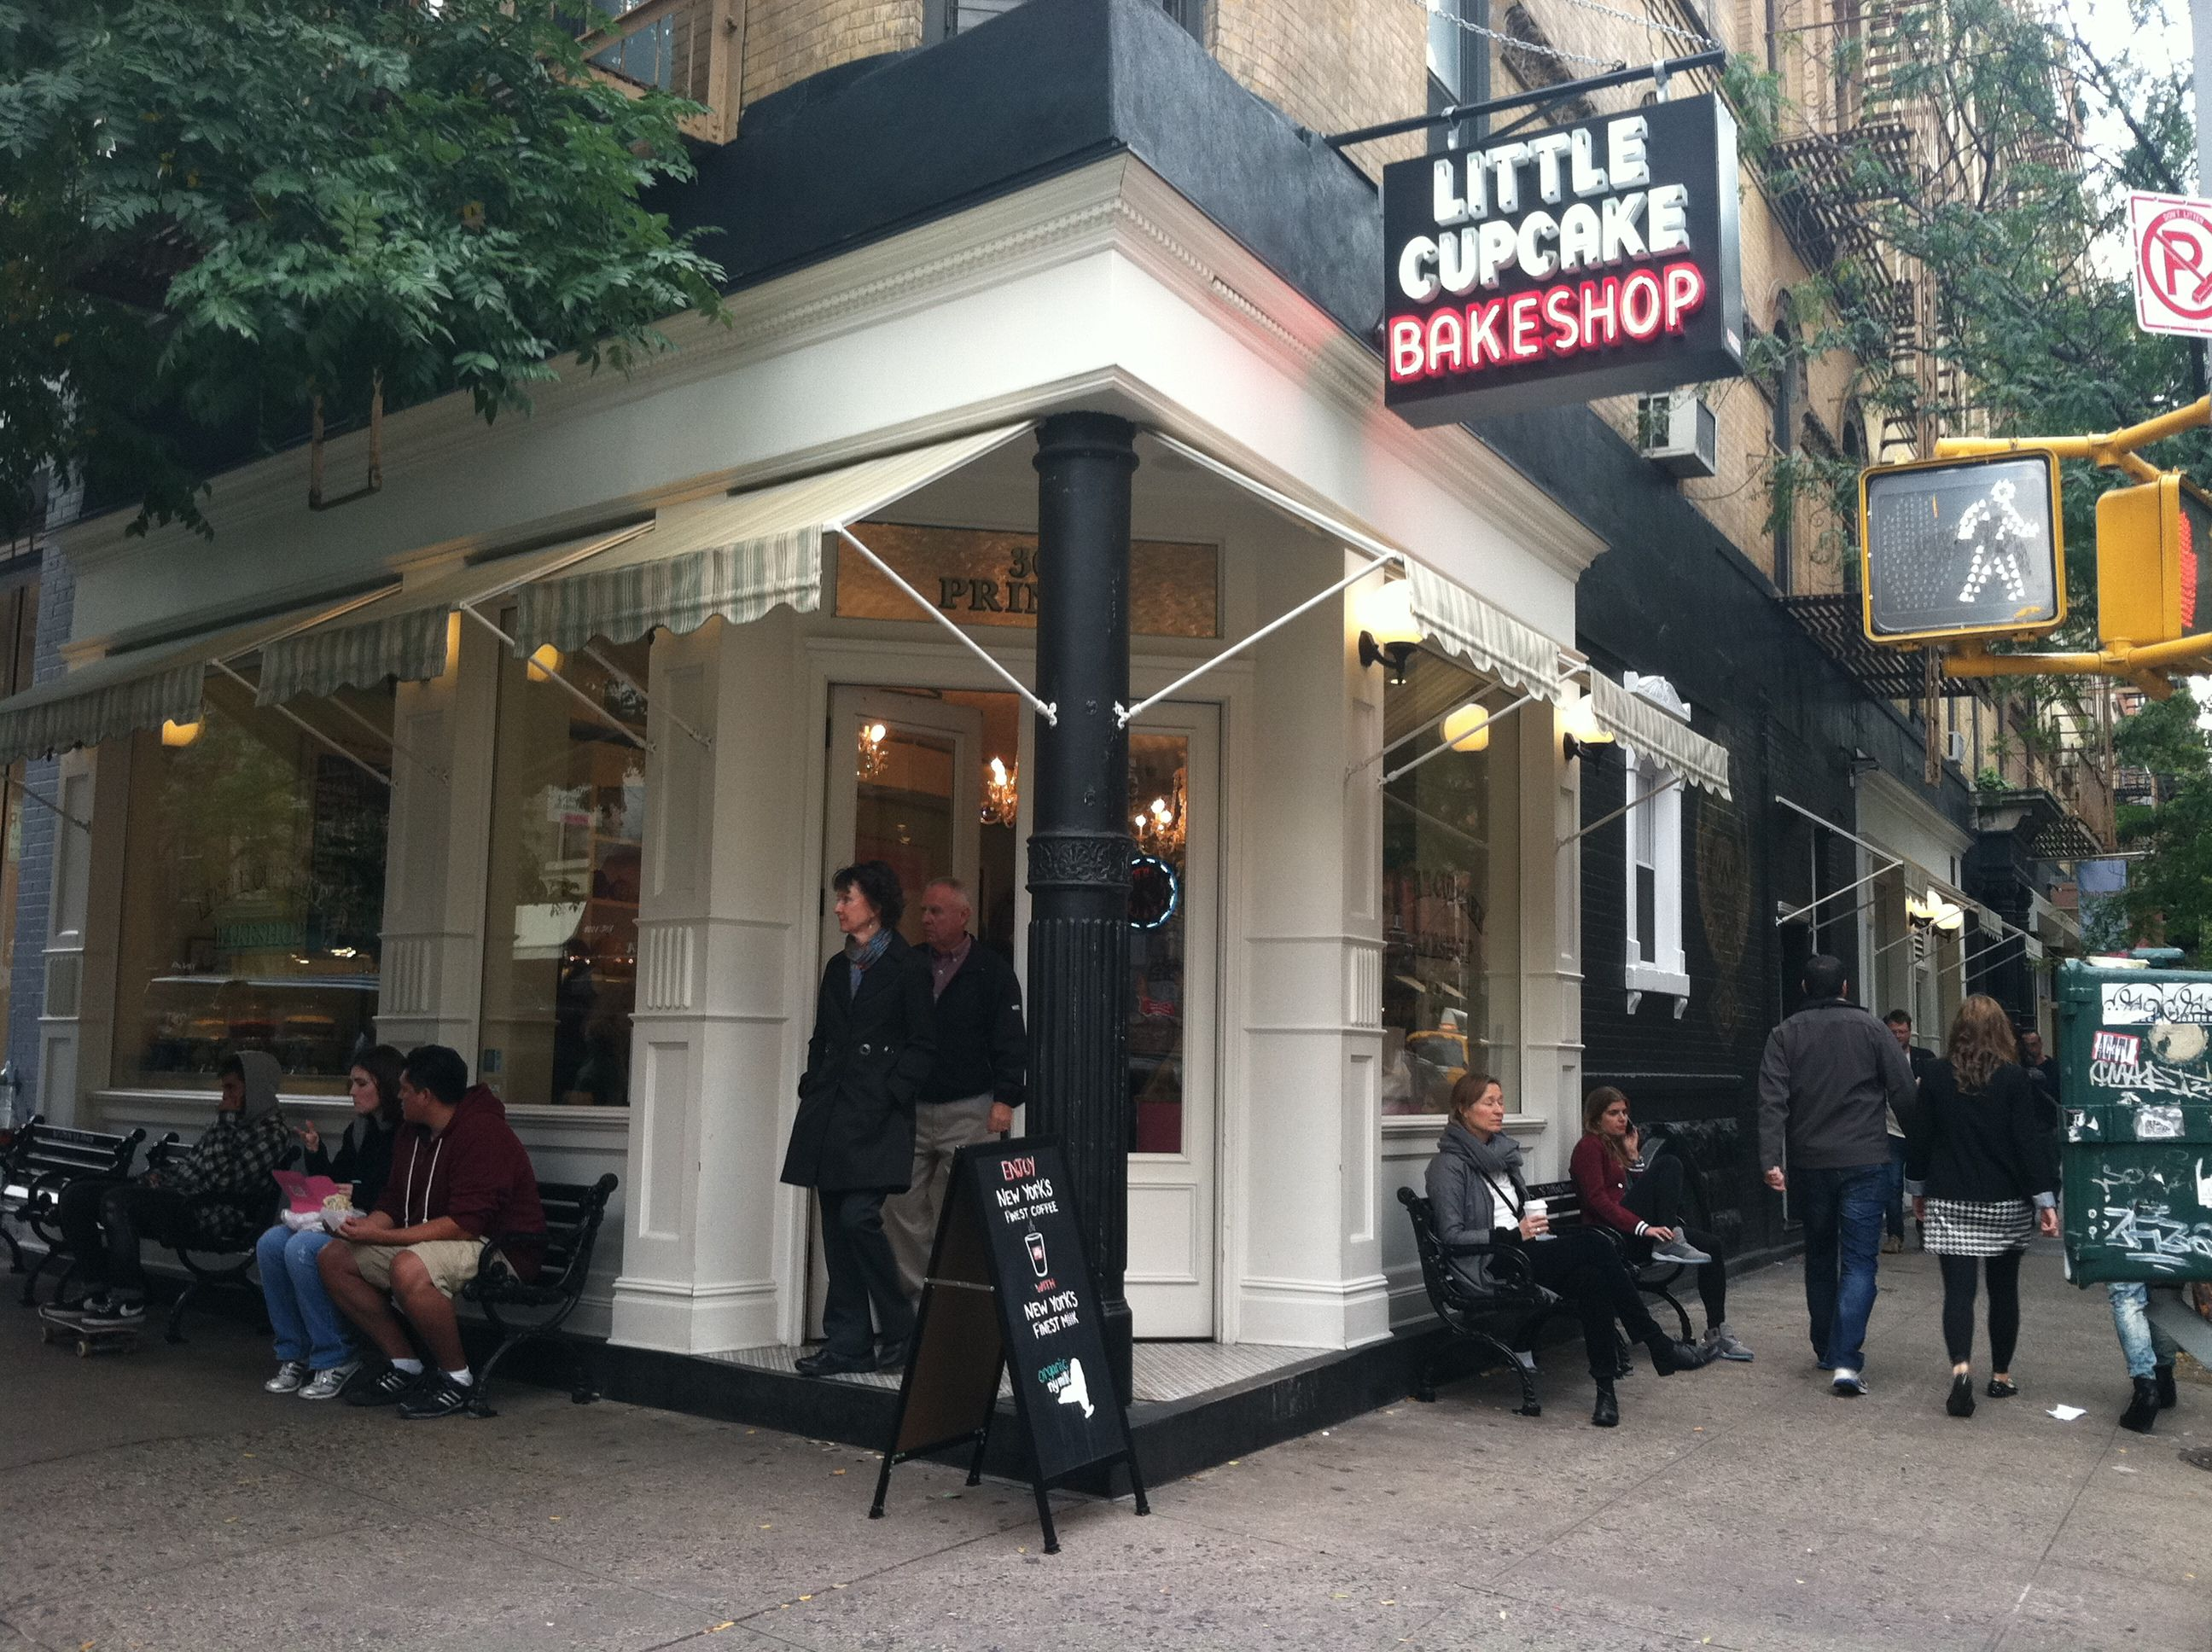 Image result for little cupcake bakeshop nyc